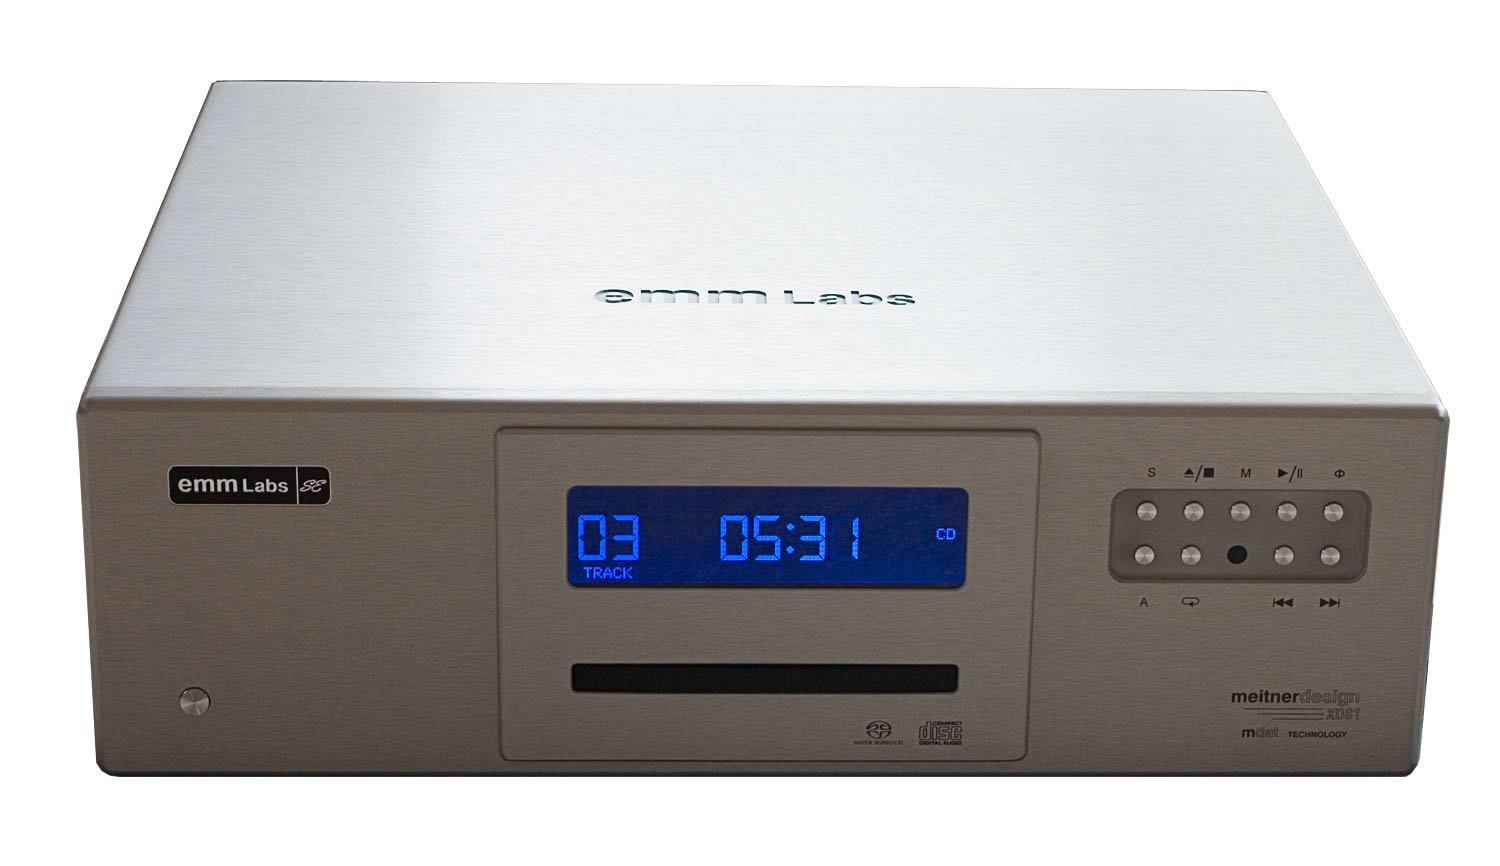 Emmlabs Xds1 Cd Player Audio Federation